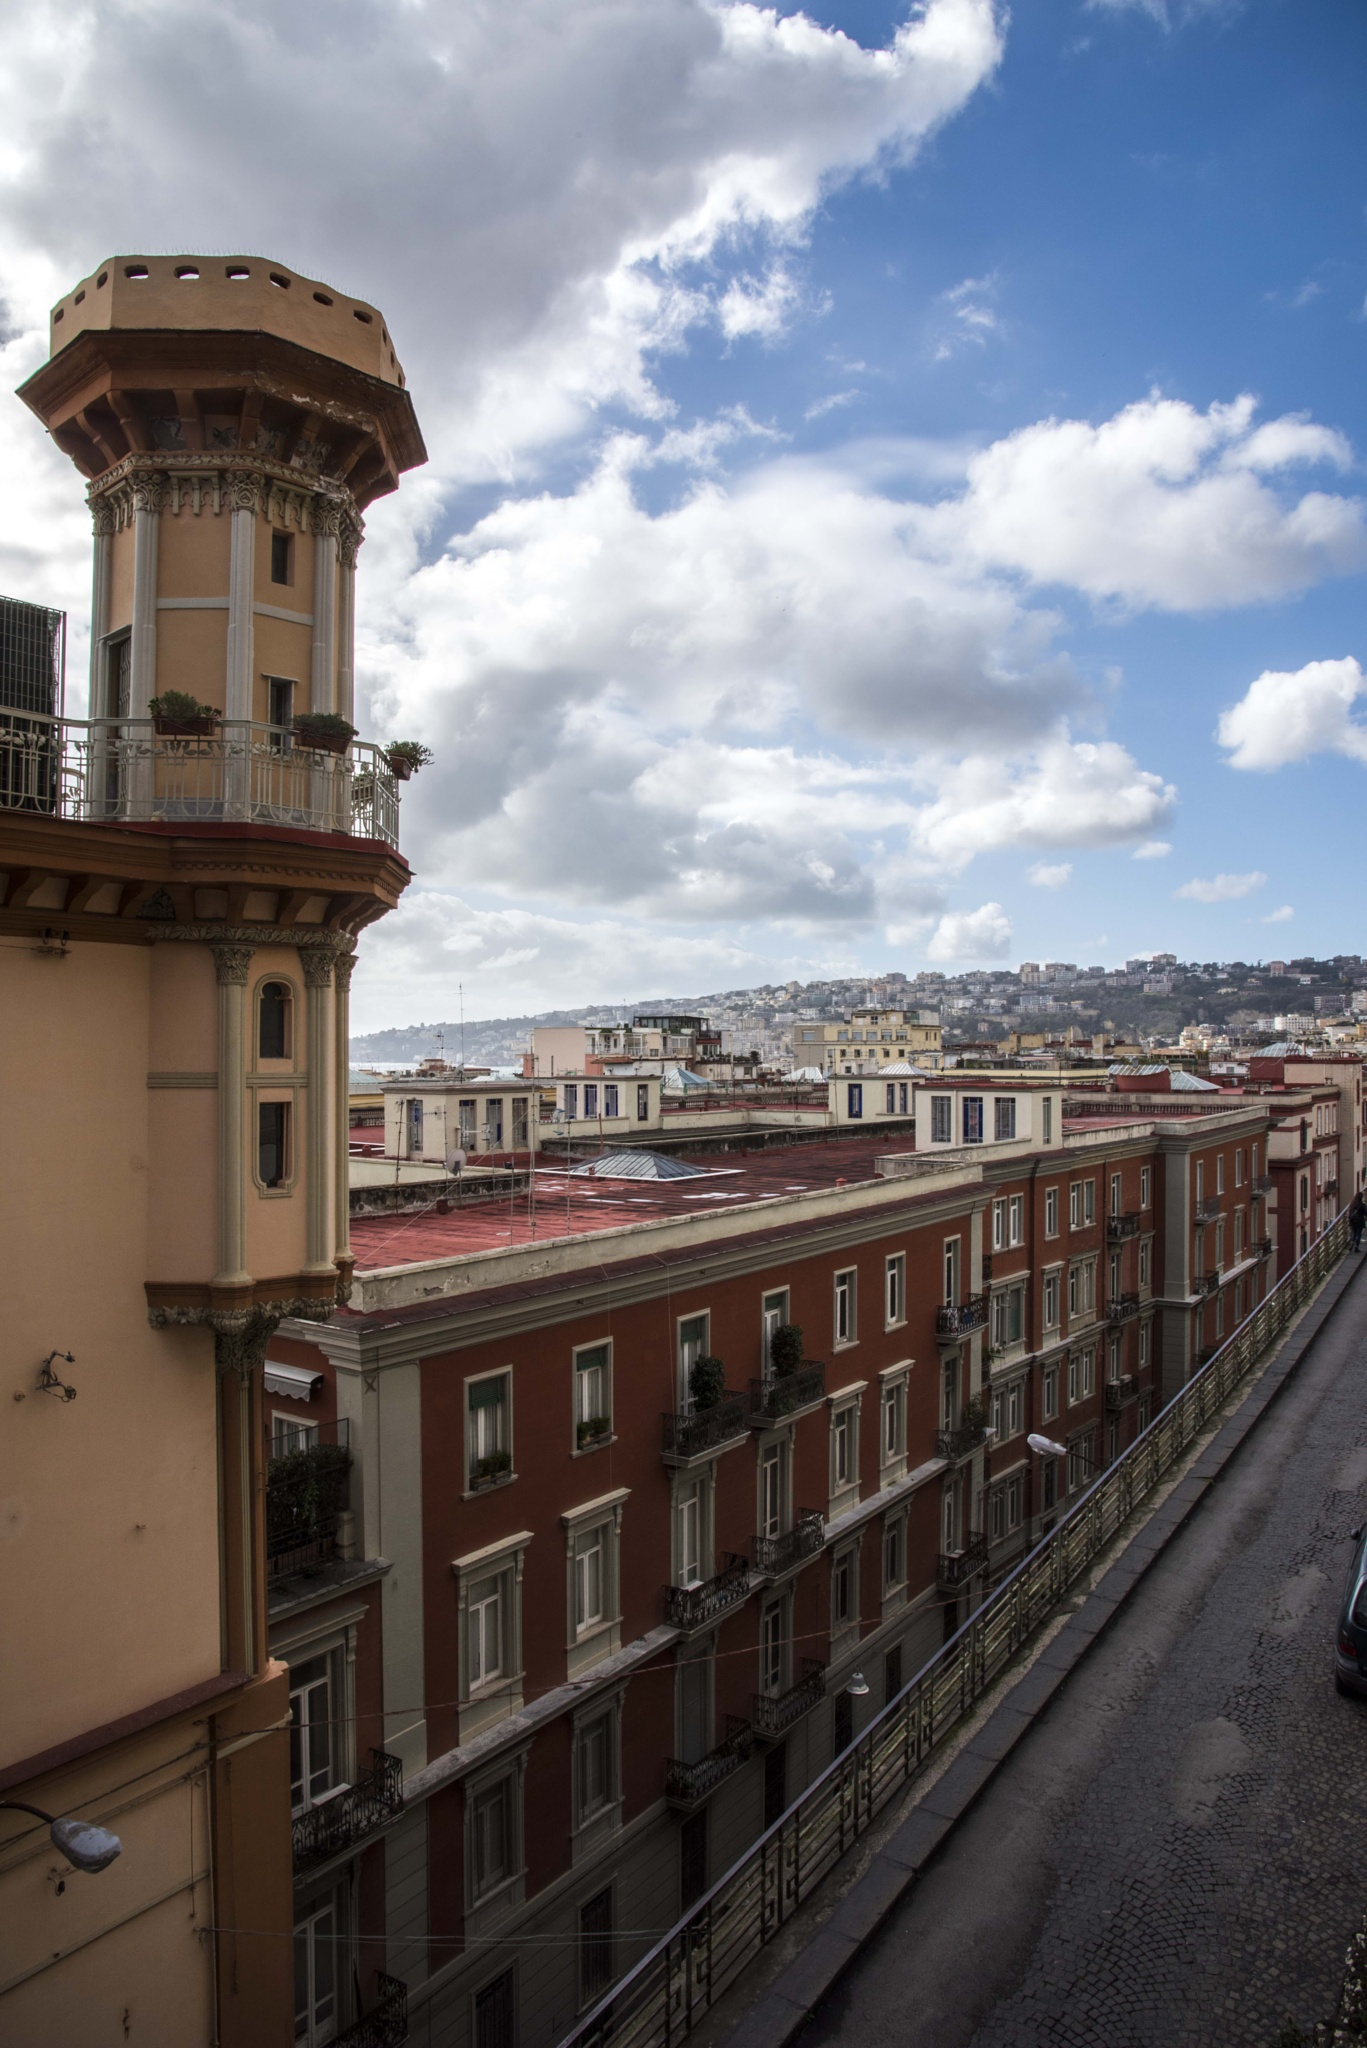 naples and the liberty by alextrusty